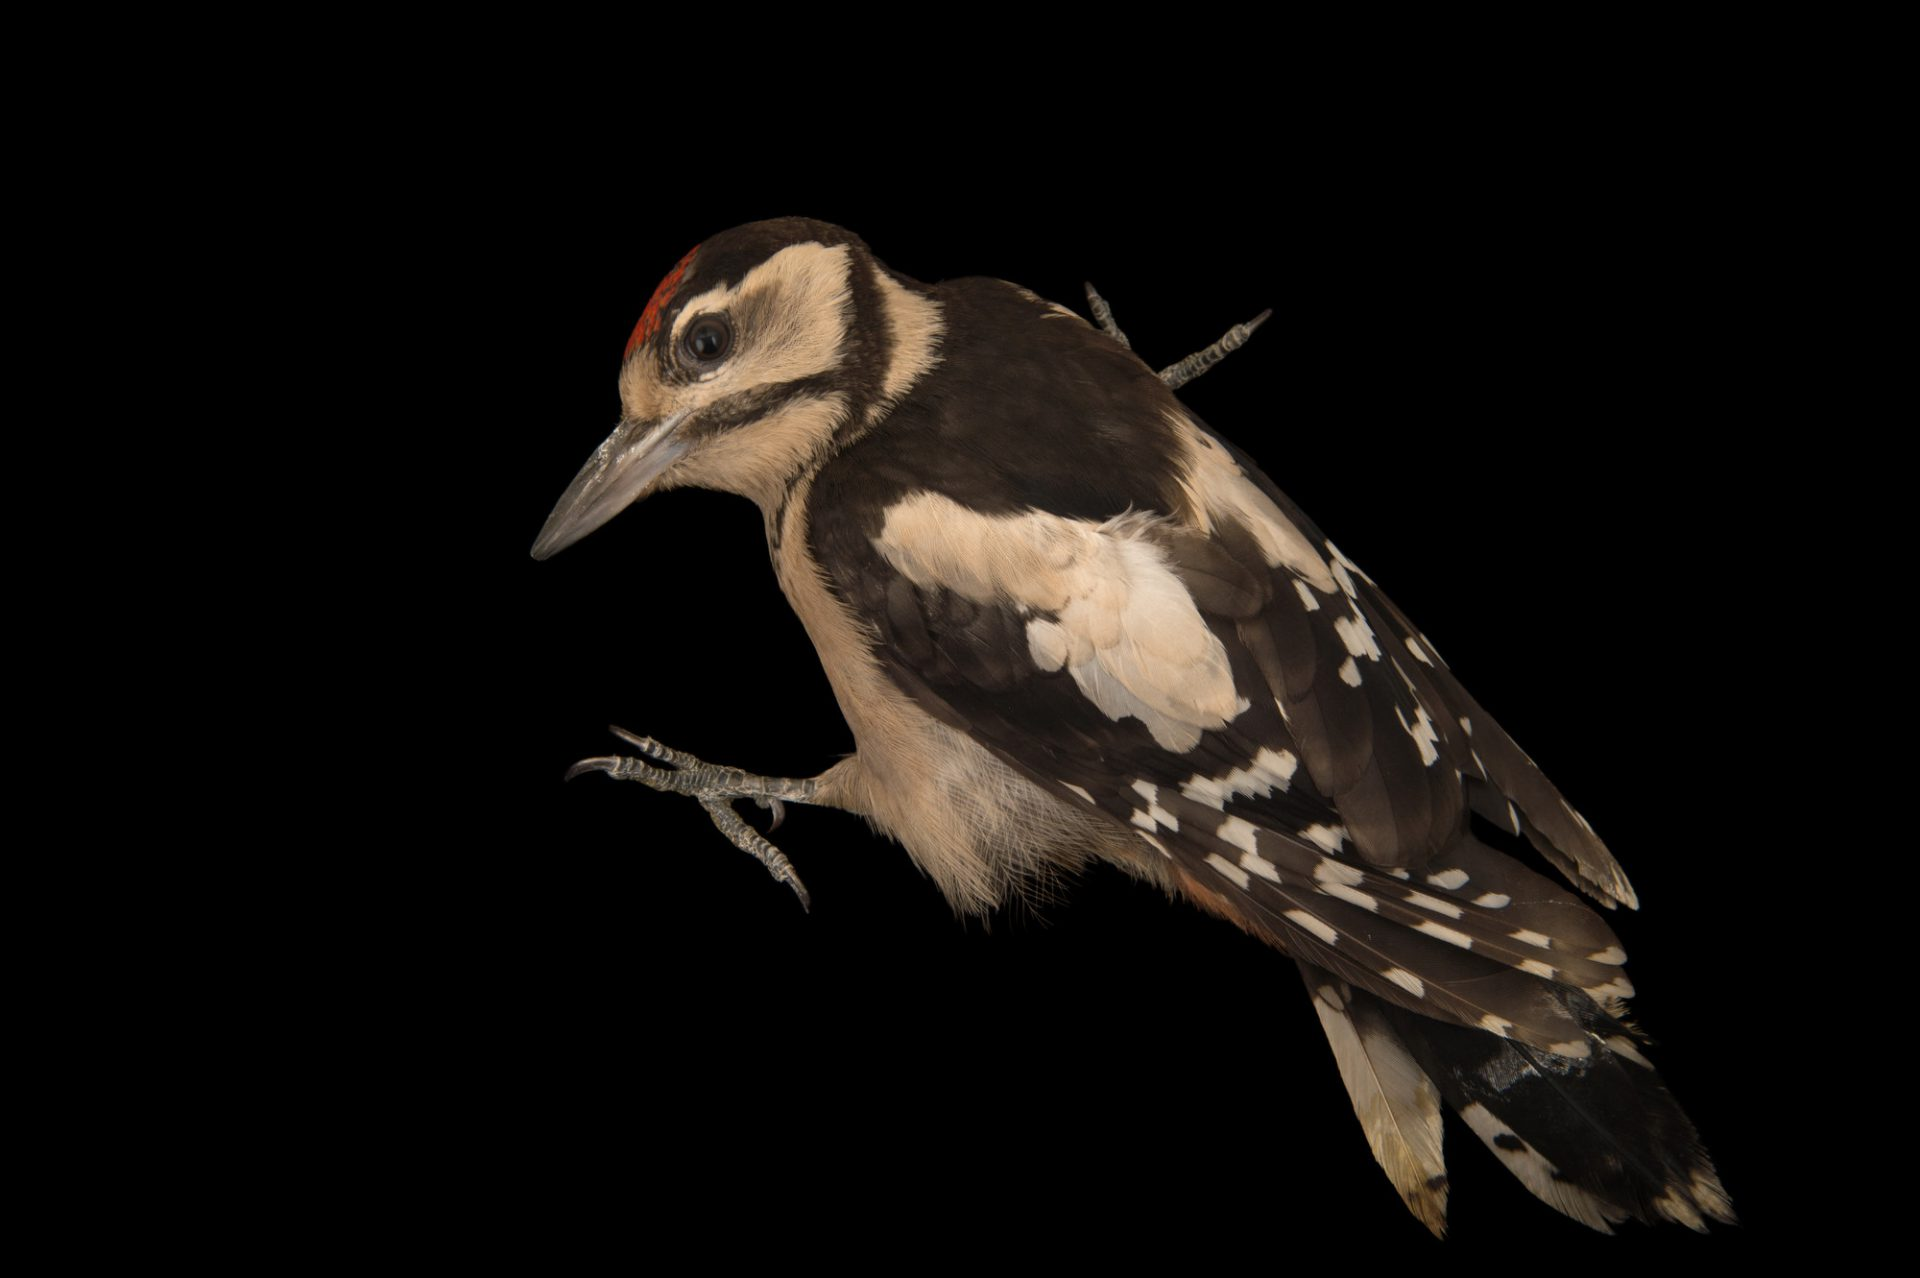 Great spotted woodpecker (Dendrocopos major pinetorum) from the Budapest Zoo.